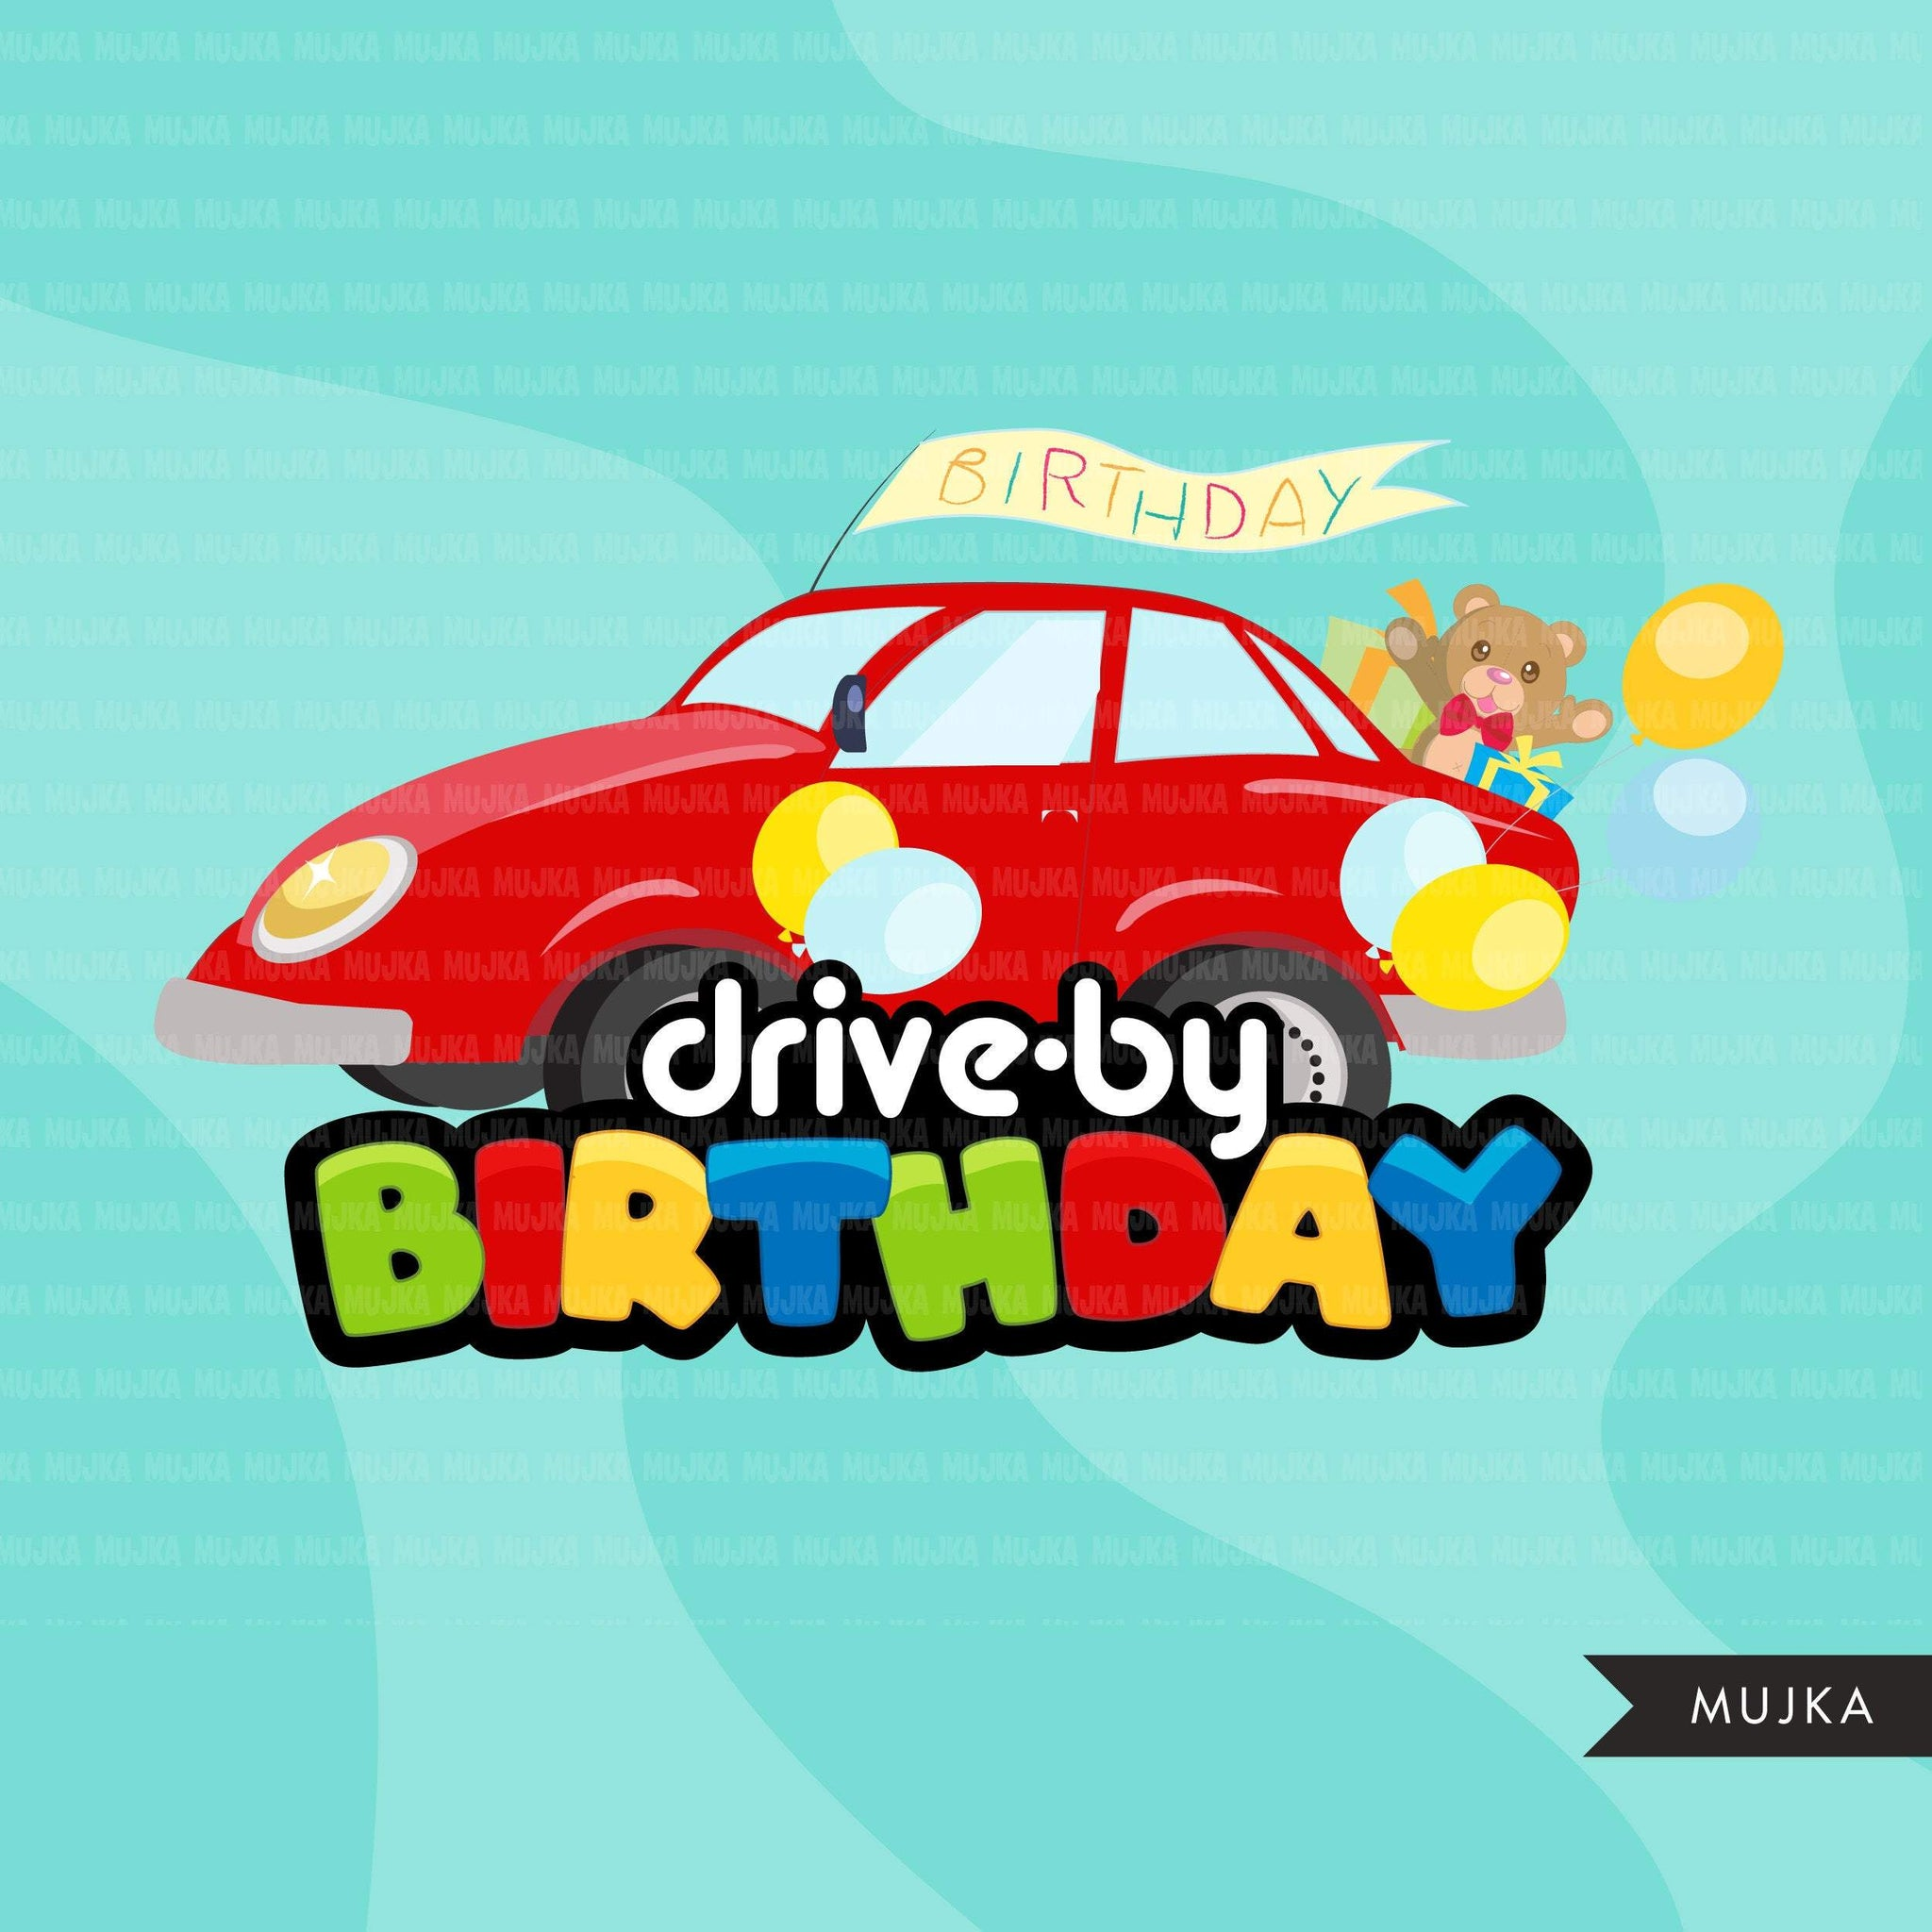 Drive-by Birthday Party parade clipart, boy quarantine birthday party, drive through party truck, car, covid graphics, PNG clip art